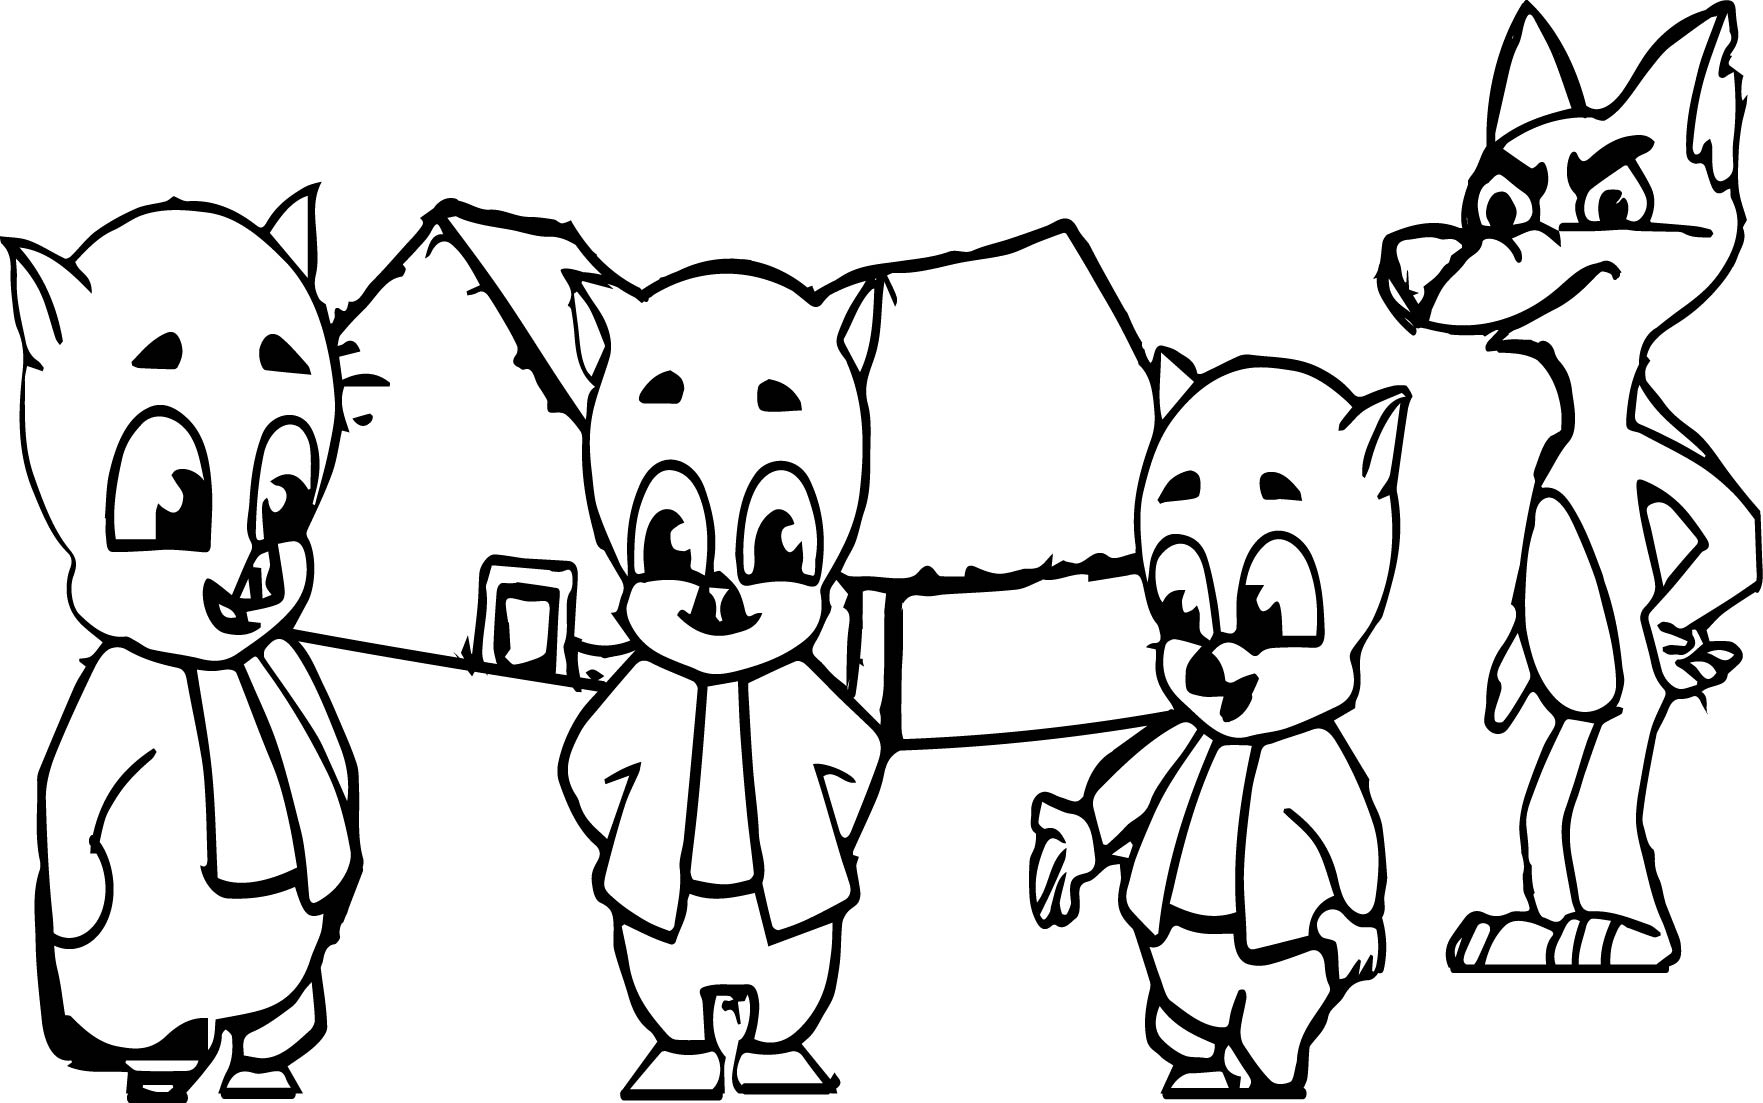 3 Little Pigs And The Big Bad Wolf Coloring Page